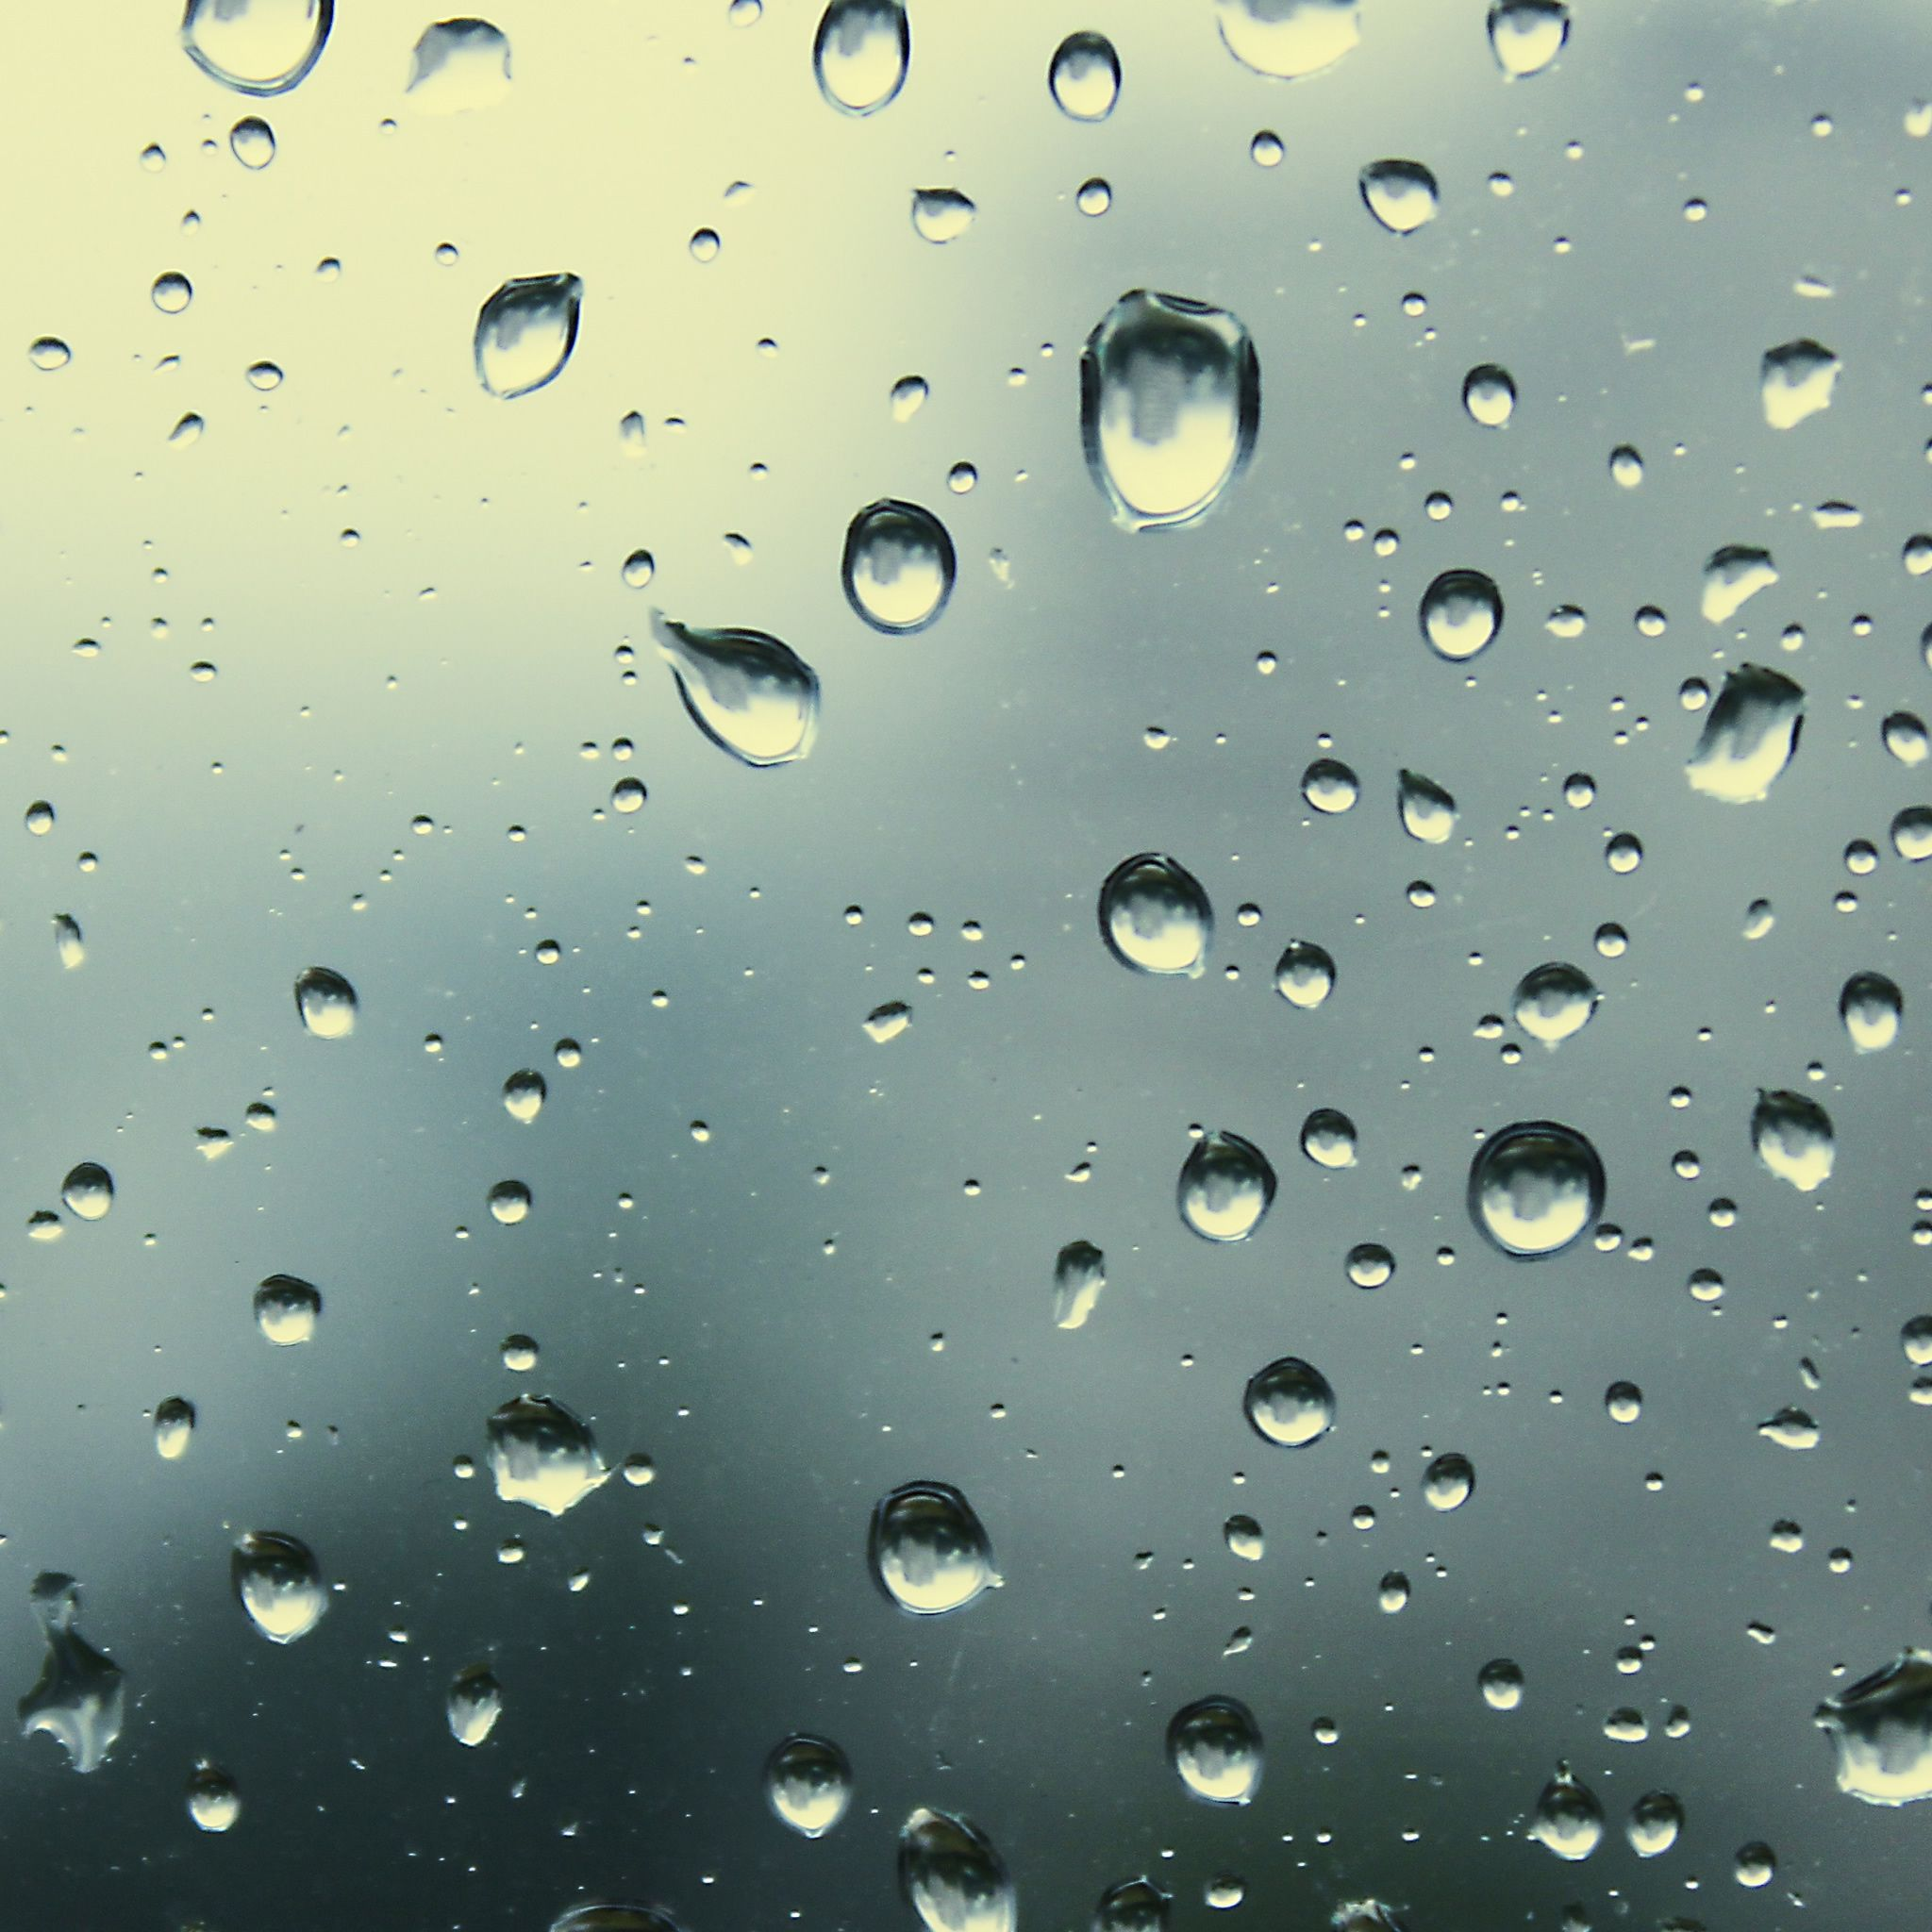 rain drops 5 ipad air wallpaper download | iphone wallpapers, ipad